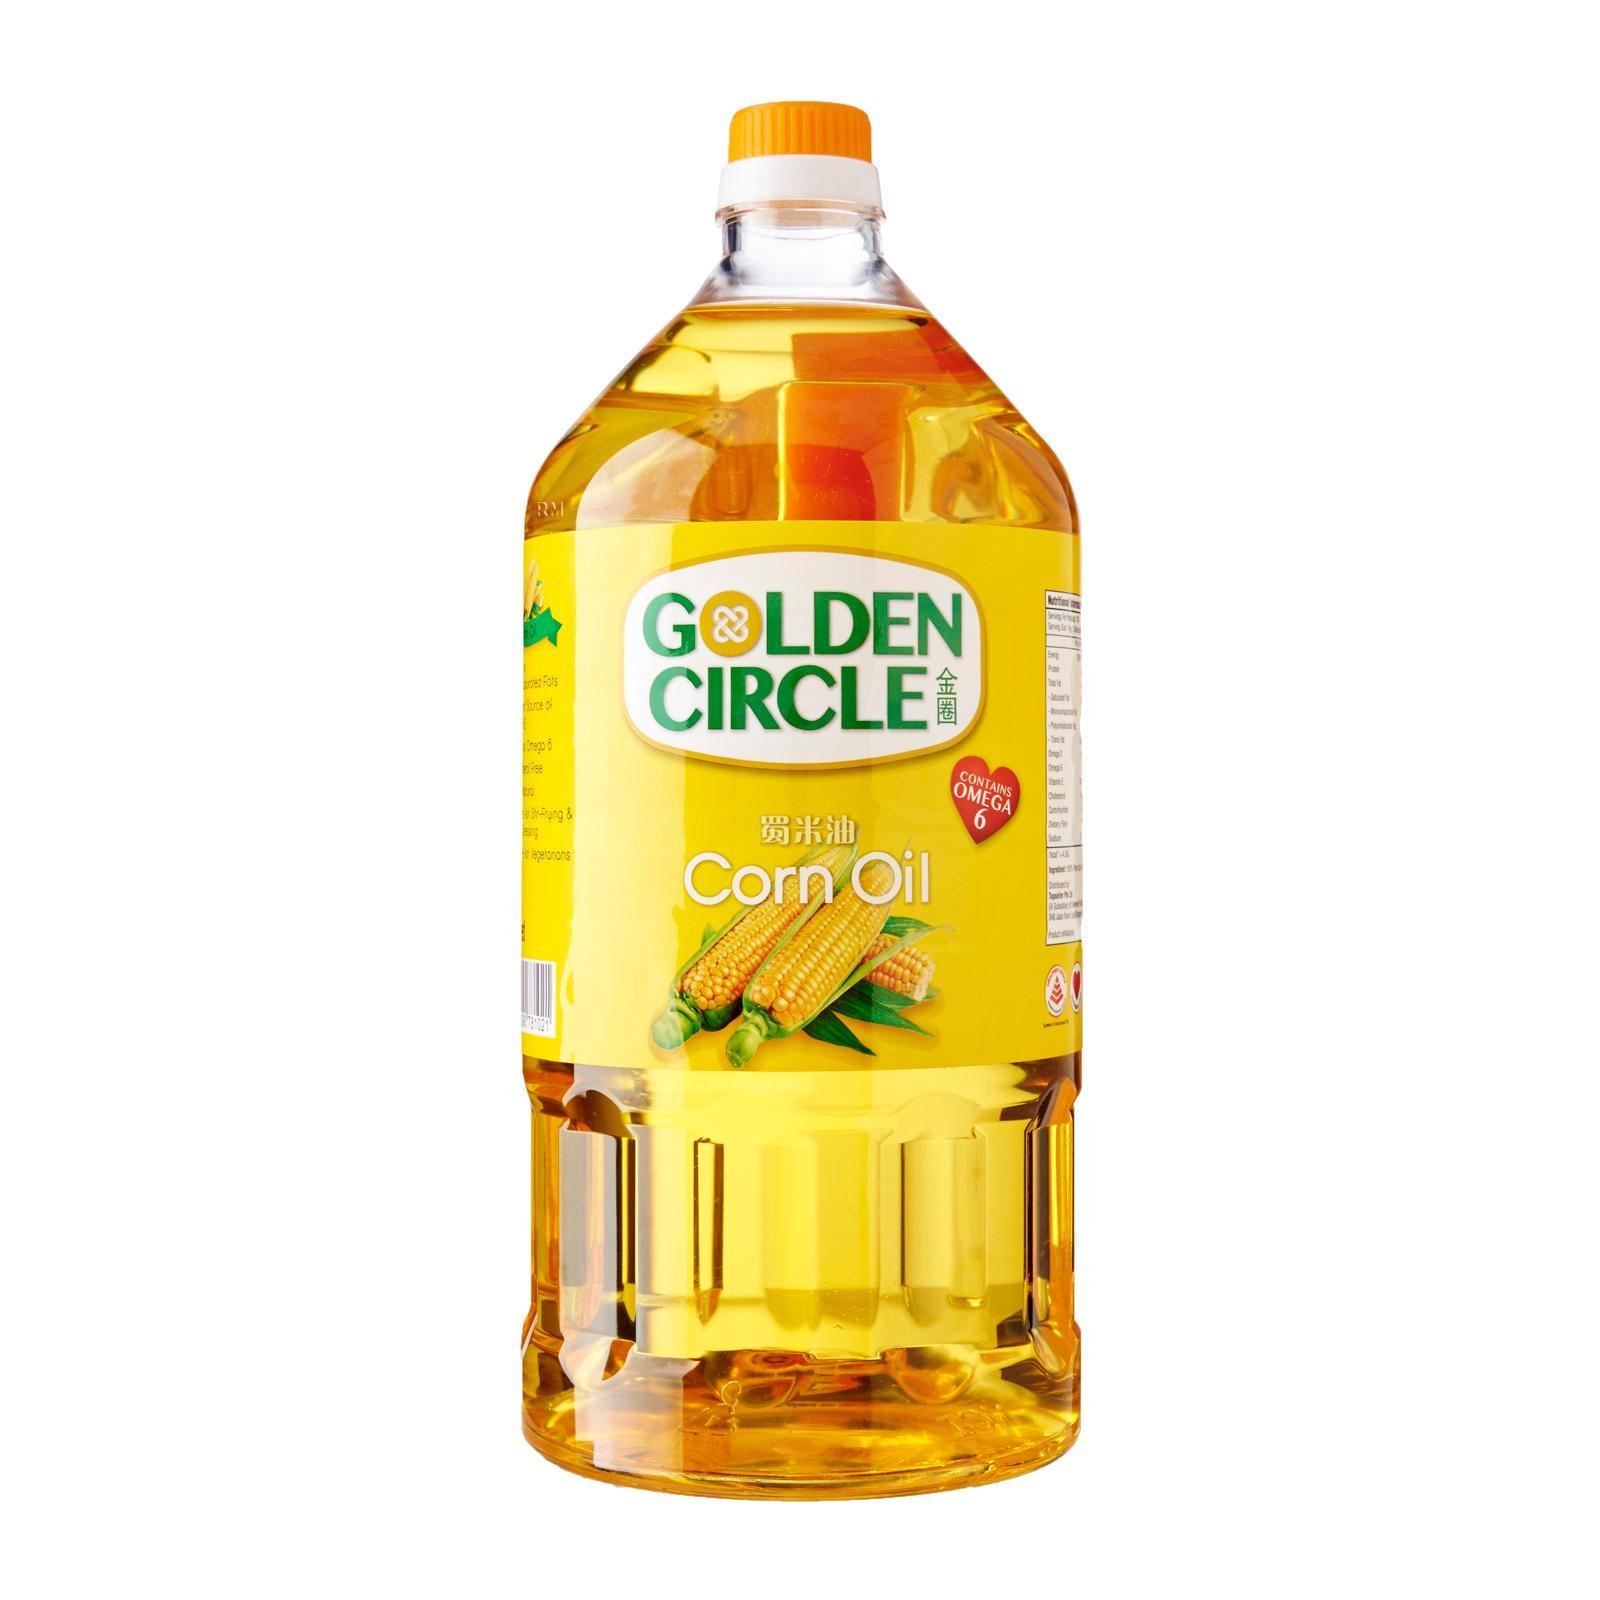 Golden Circle 100% Pure Corn Oil By Redmart.